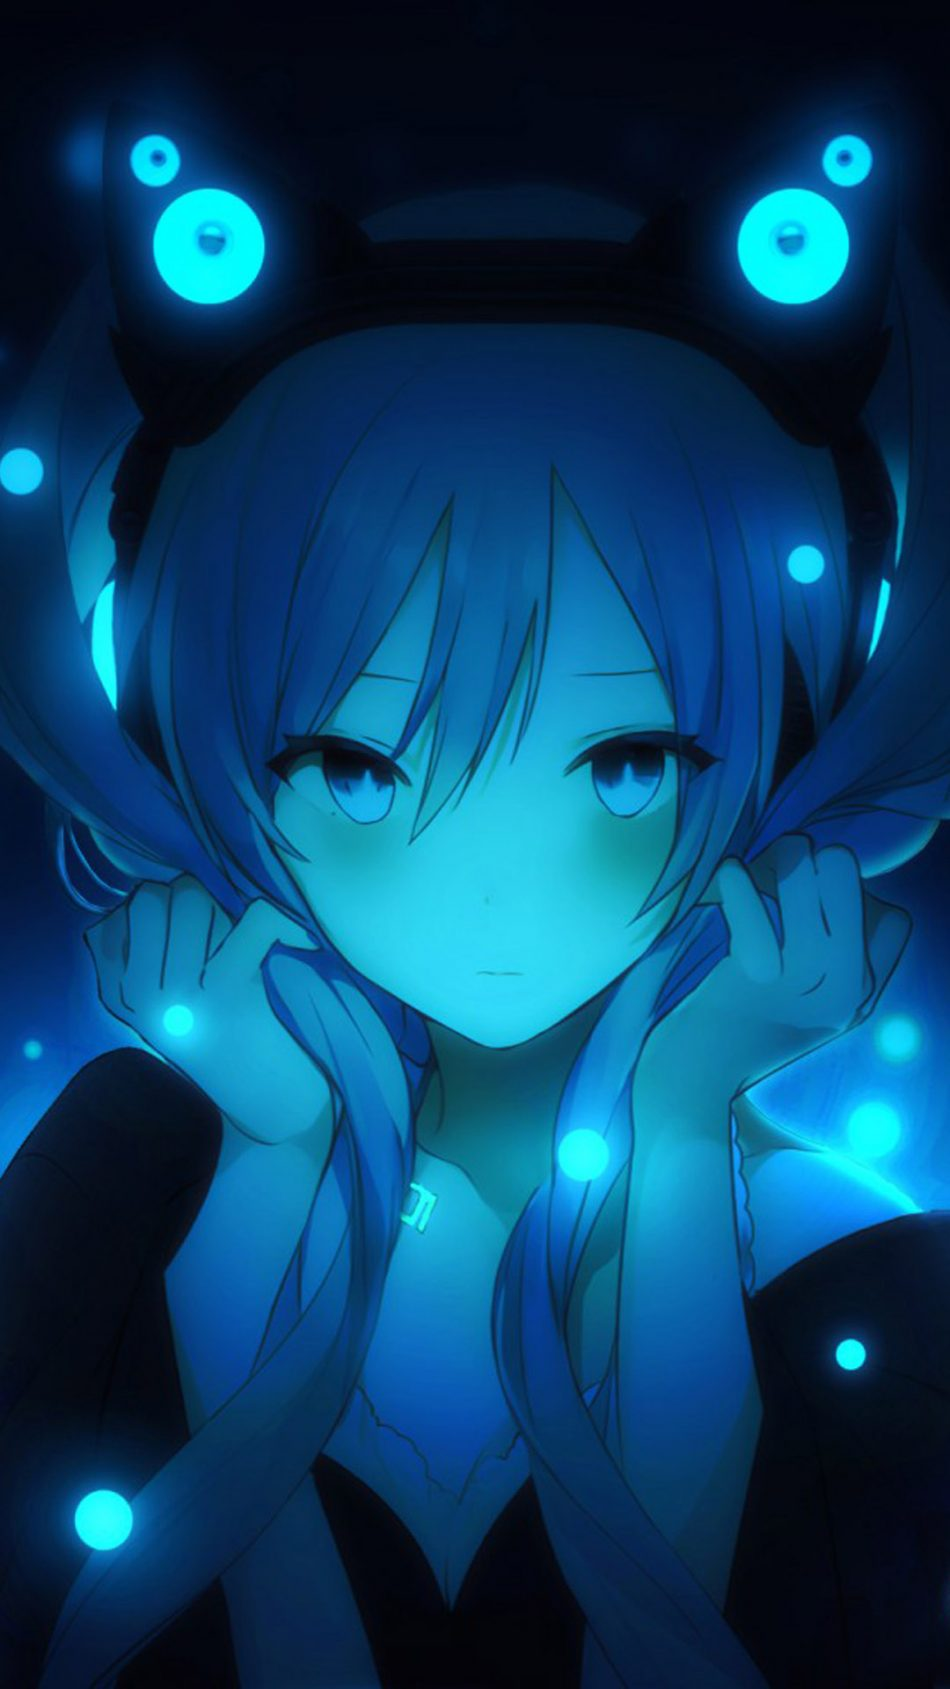 Download Hatsune Miku Anime Girl Free Pure 4K Ultra HD